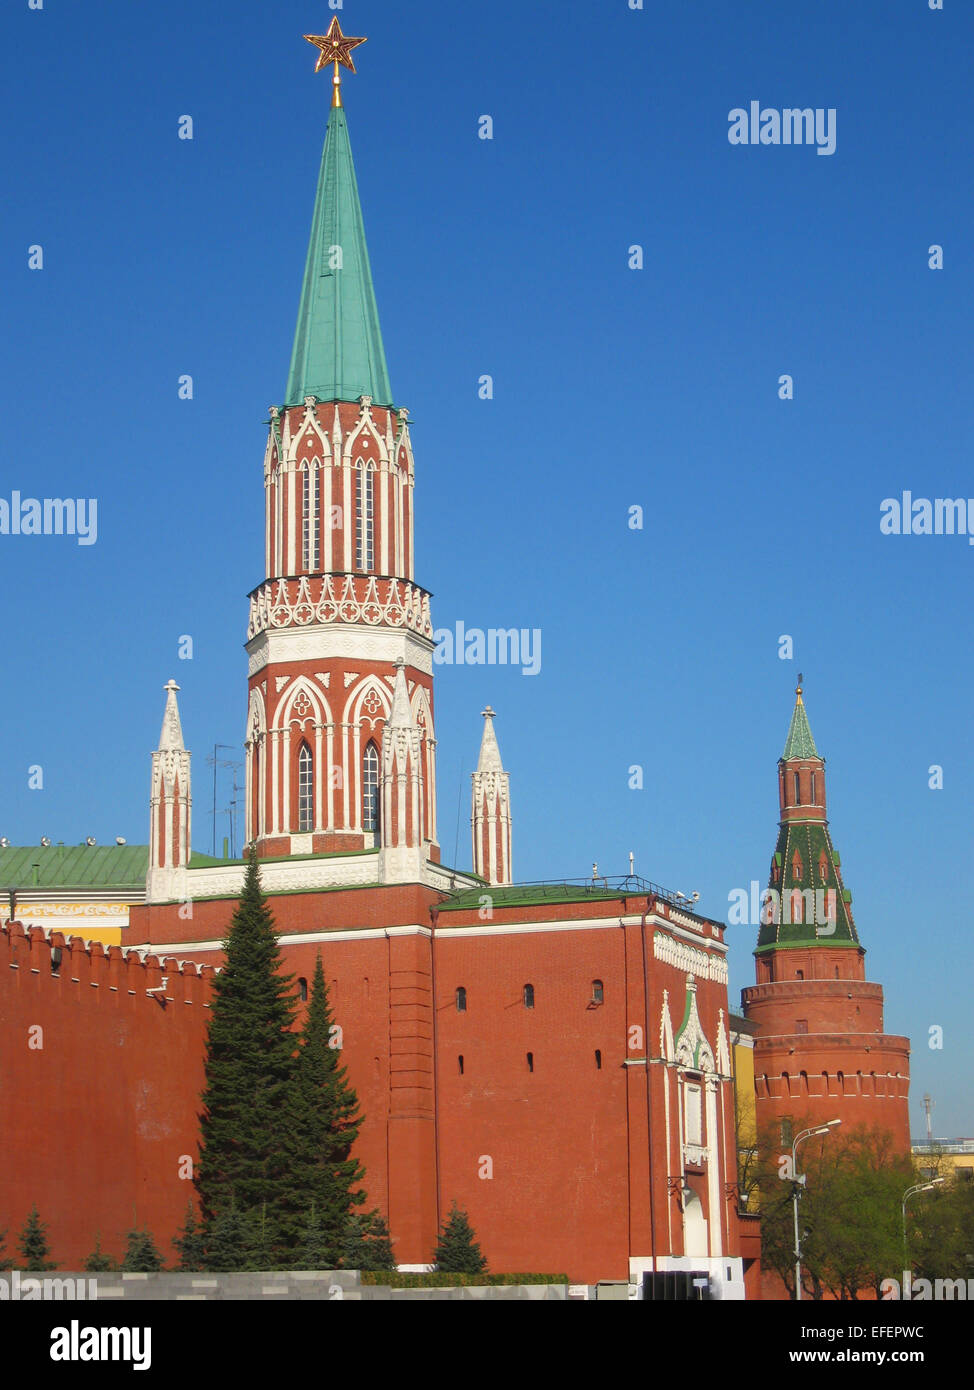 Moscow, two towers of Kremlin fortress. Date of recording 27.04.2008/ - Stock Image